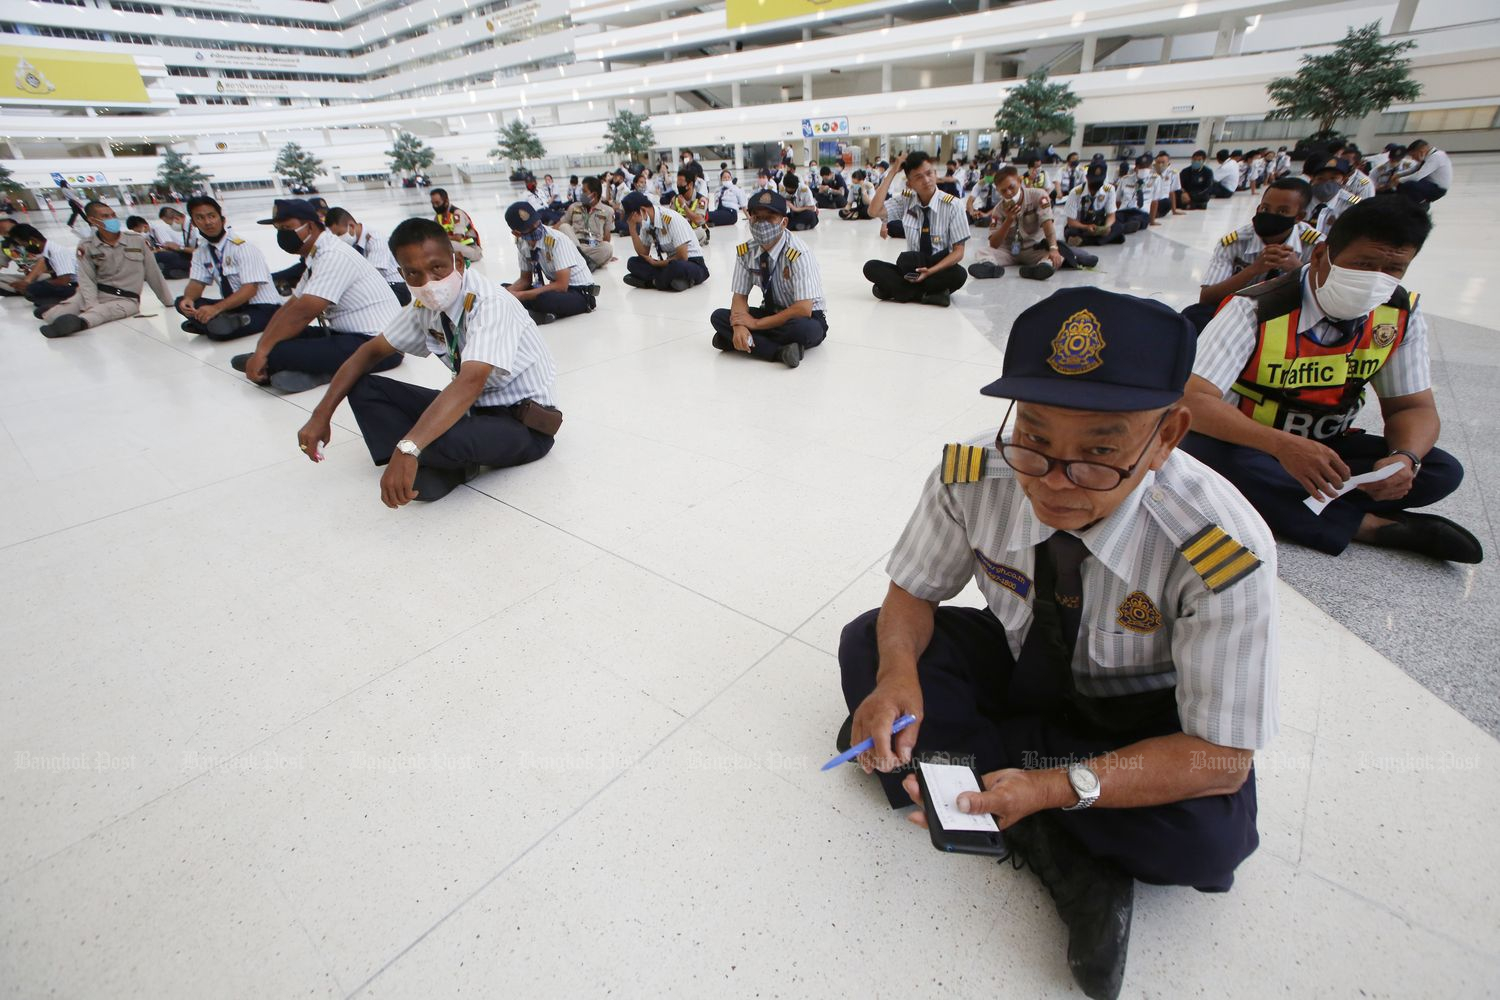 Former employees of a security company contracted to provide the service at the Government Complex gather to seek explanations from the company after the contract ended and they were laid off. They claimed the company still owed them 20,000 baht each in salaries and compensation. (Photo by Pornprom Satrabhaya)